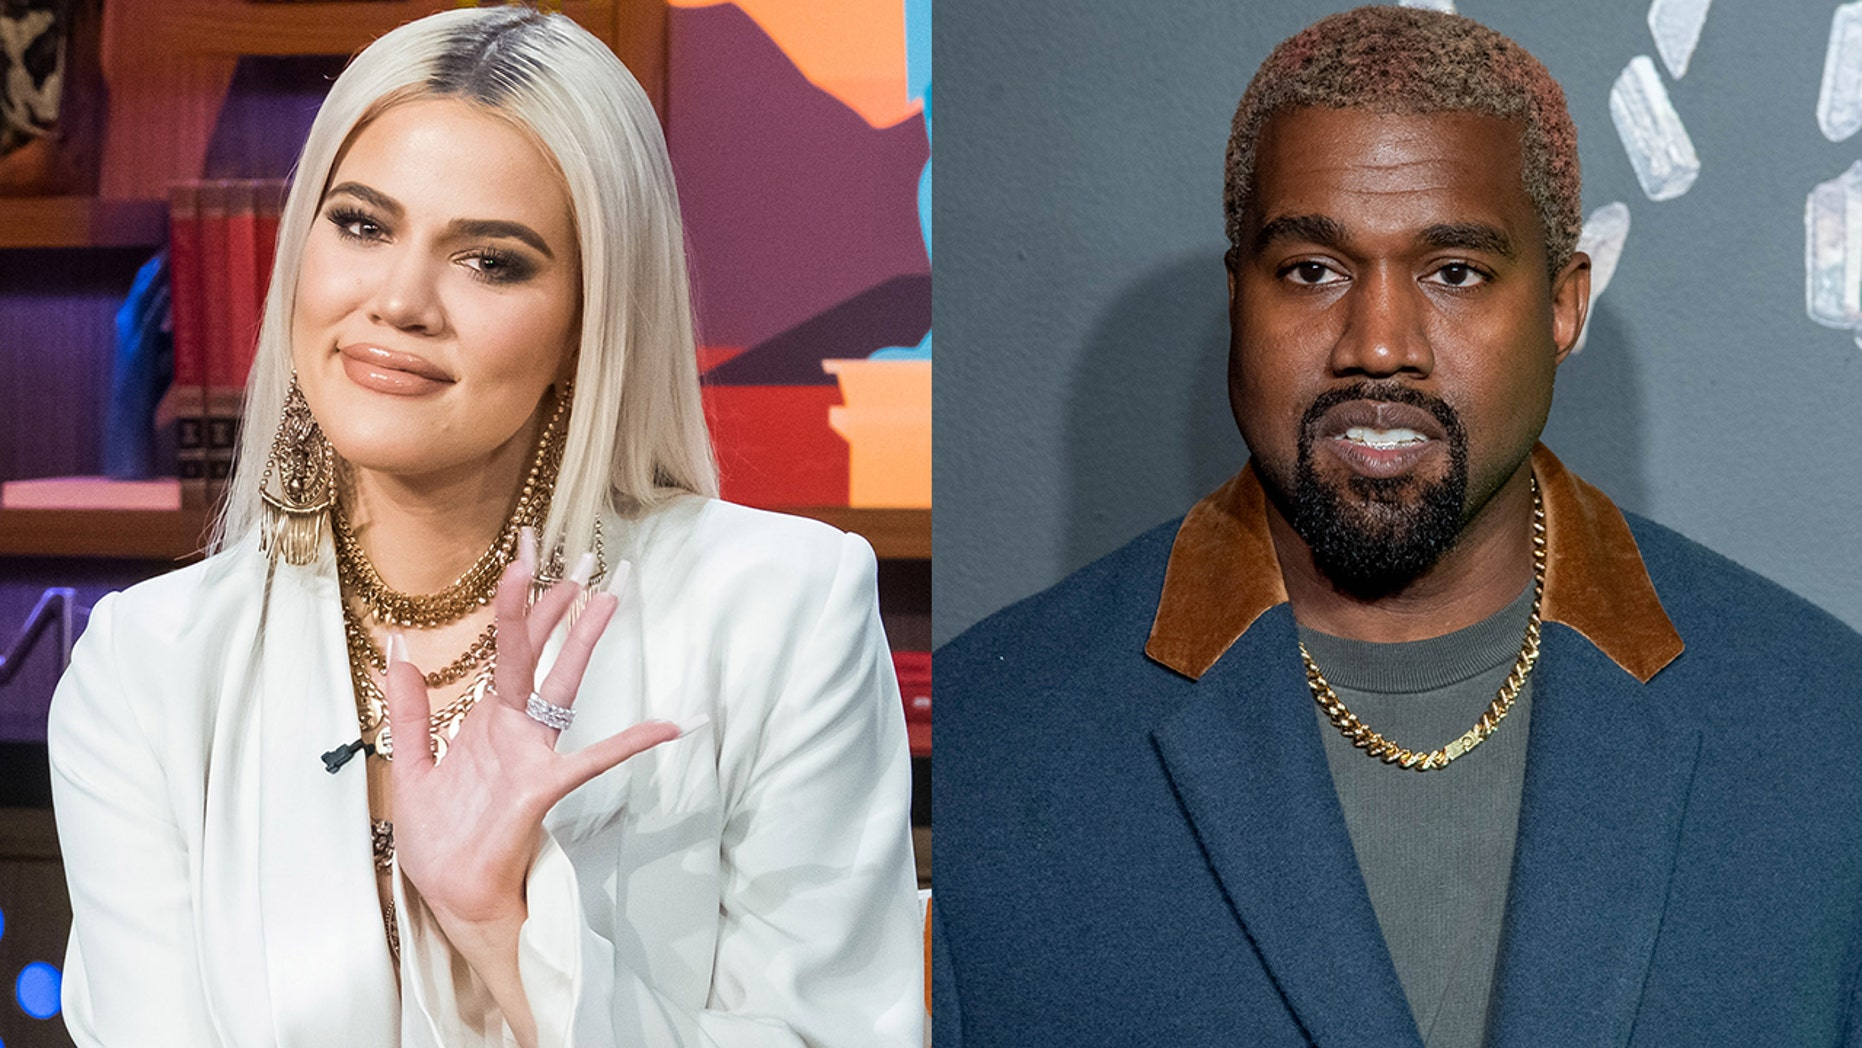 Khloe Kardashian wore a had promoting brother-in-law Kanye West's rumored 2020 presidential run.